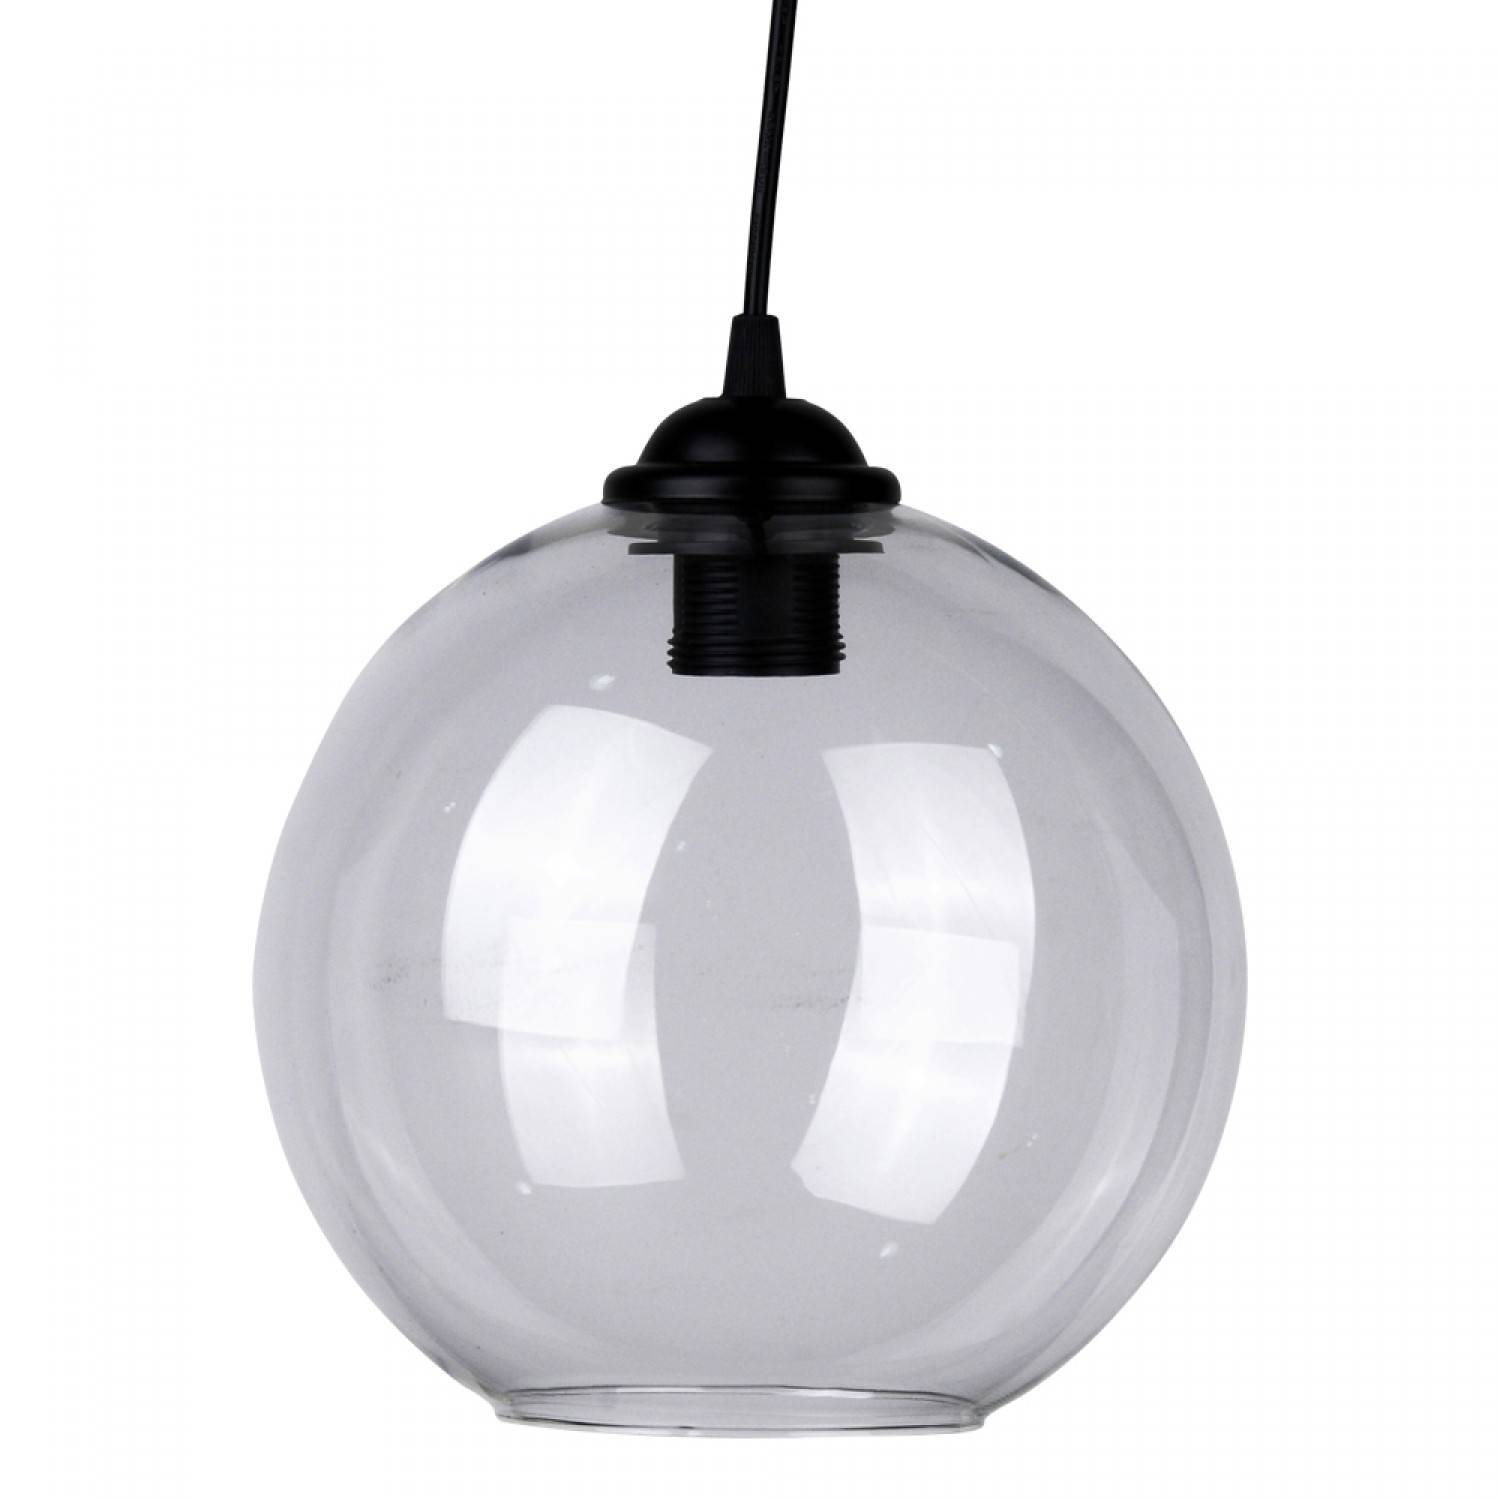 Suspension boule noire fashion designs for Suspension boule verre